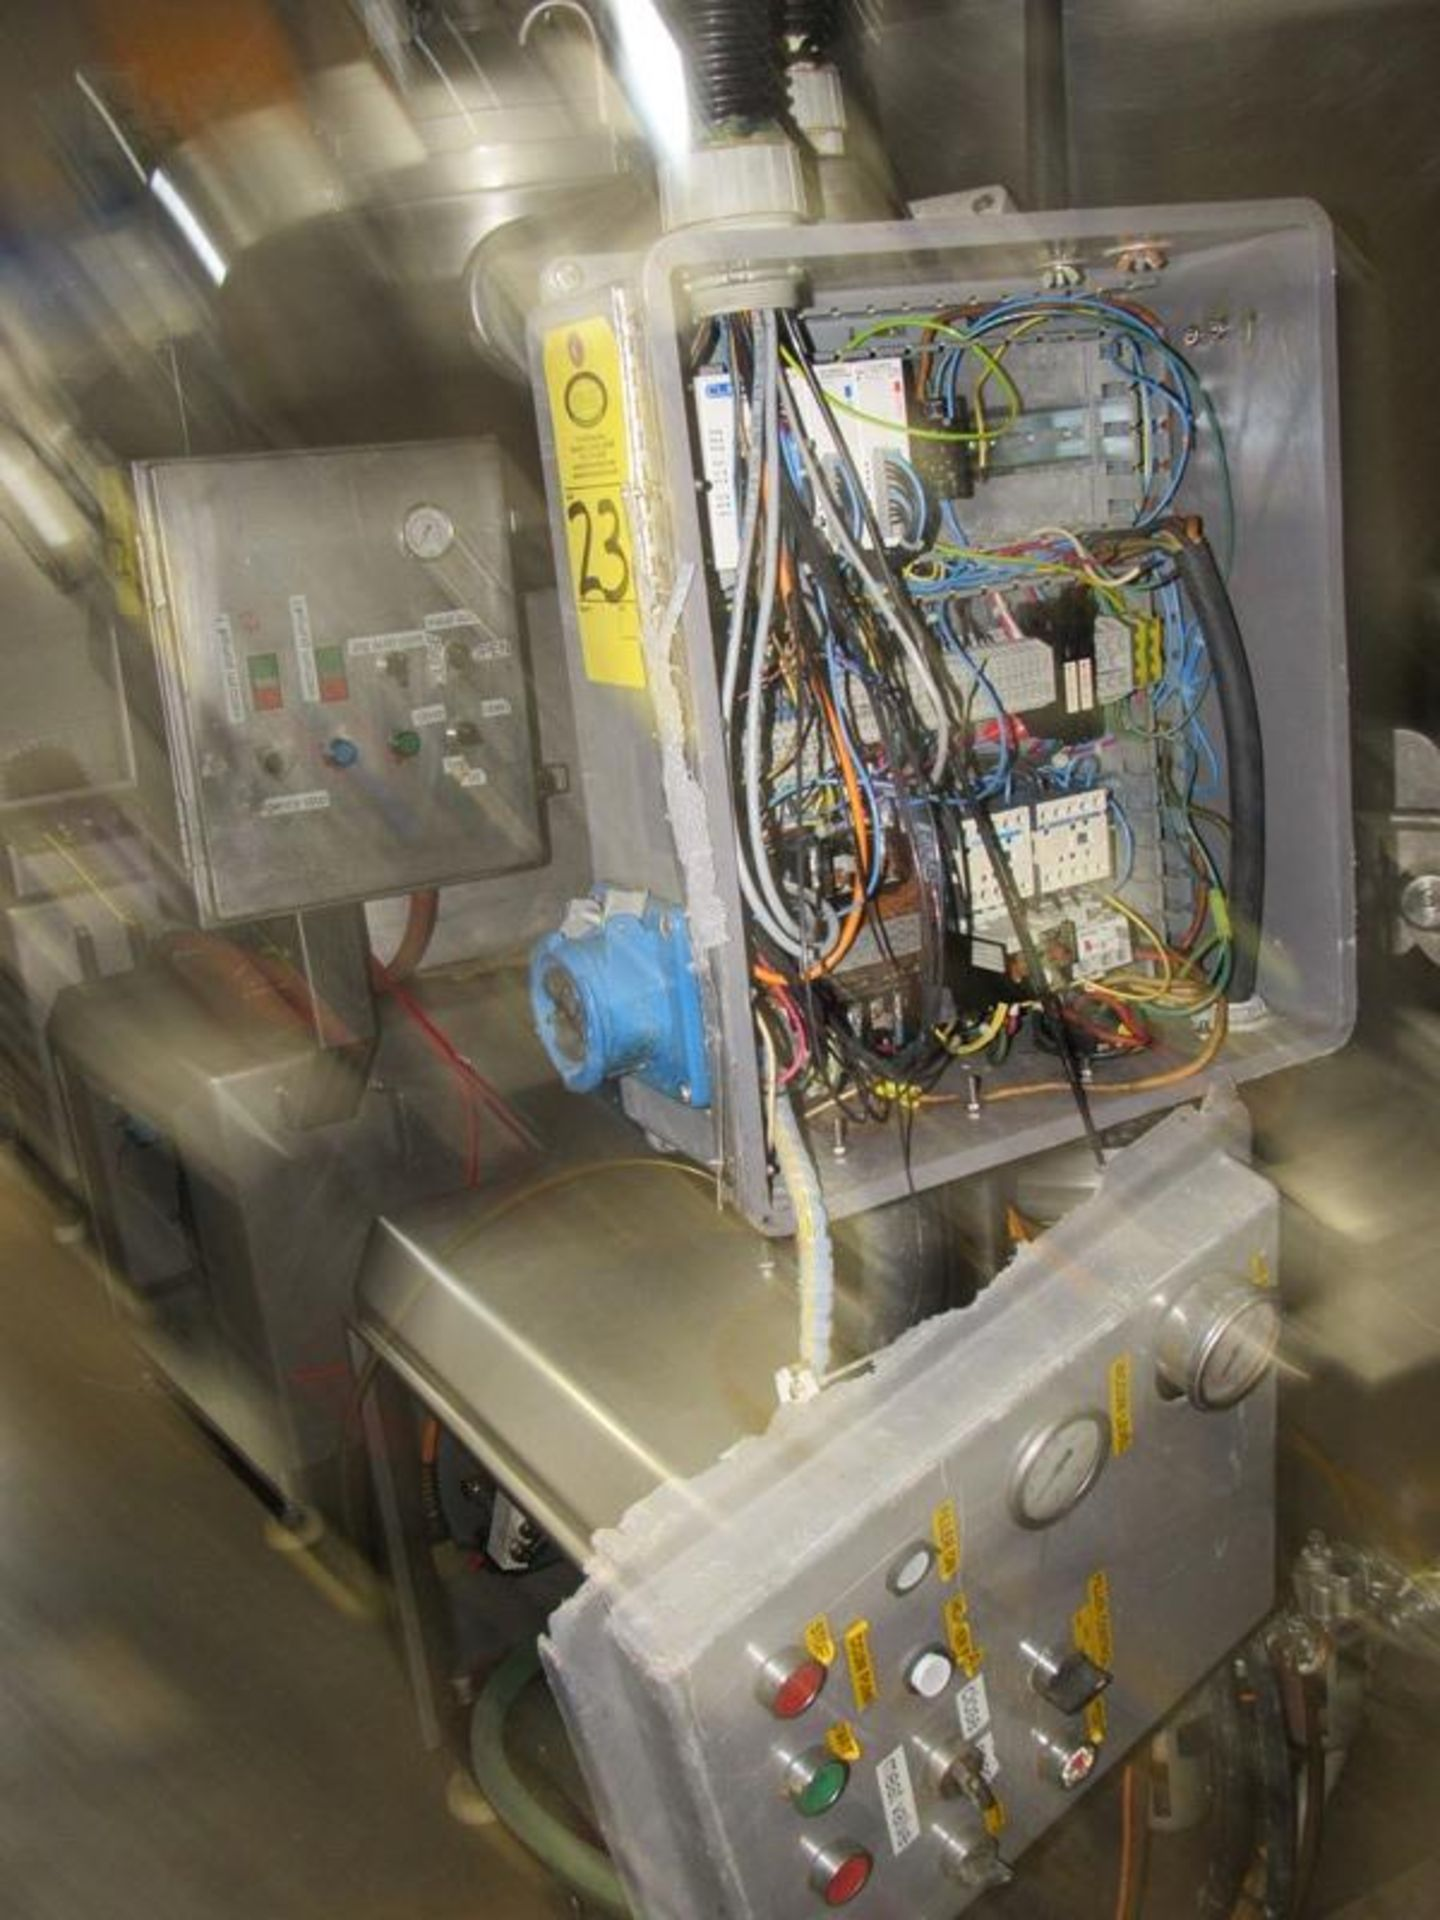 Handtmann Mdl. HVF-90 Vacuum Stuffer Pump (Equipment must be removed by Thursday, June 24th no - Image 5 of 6